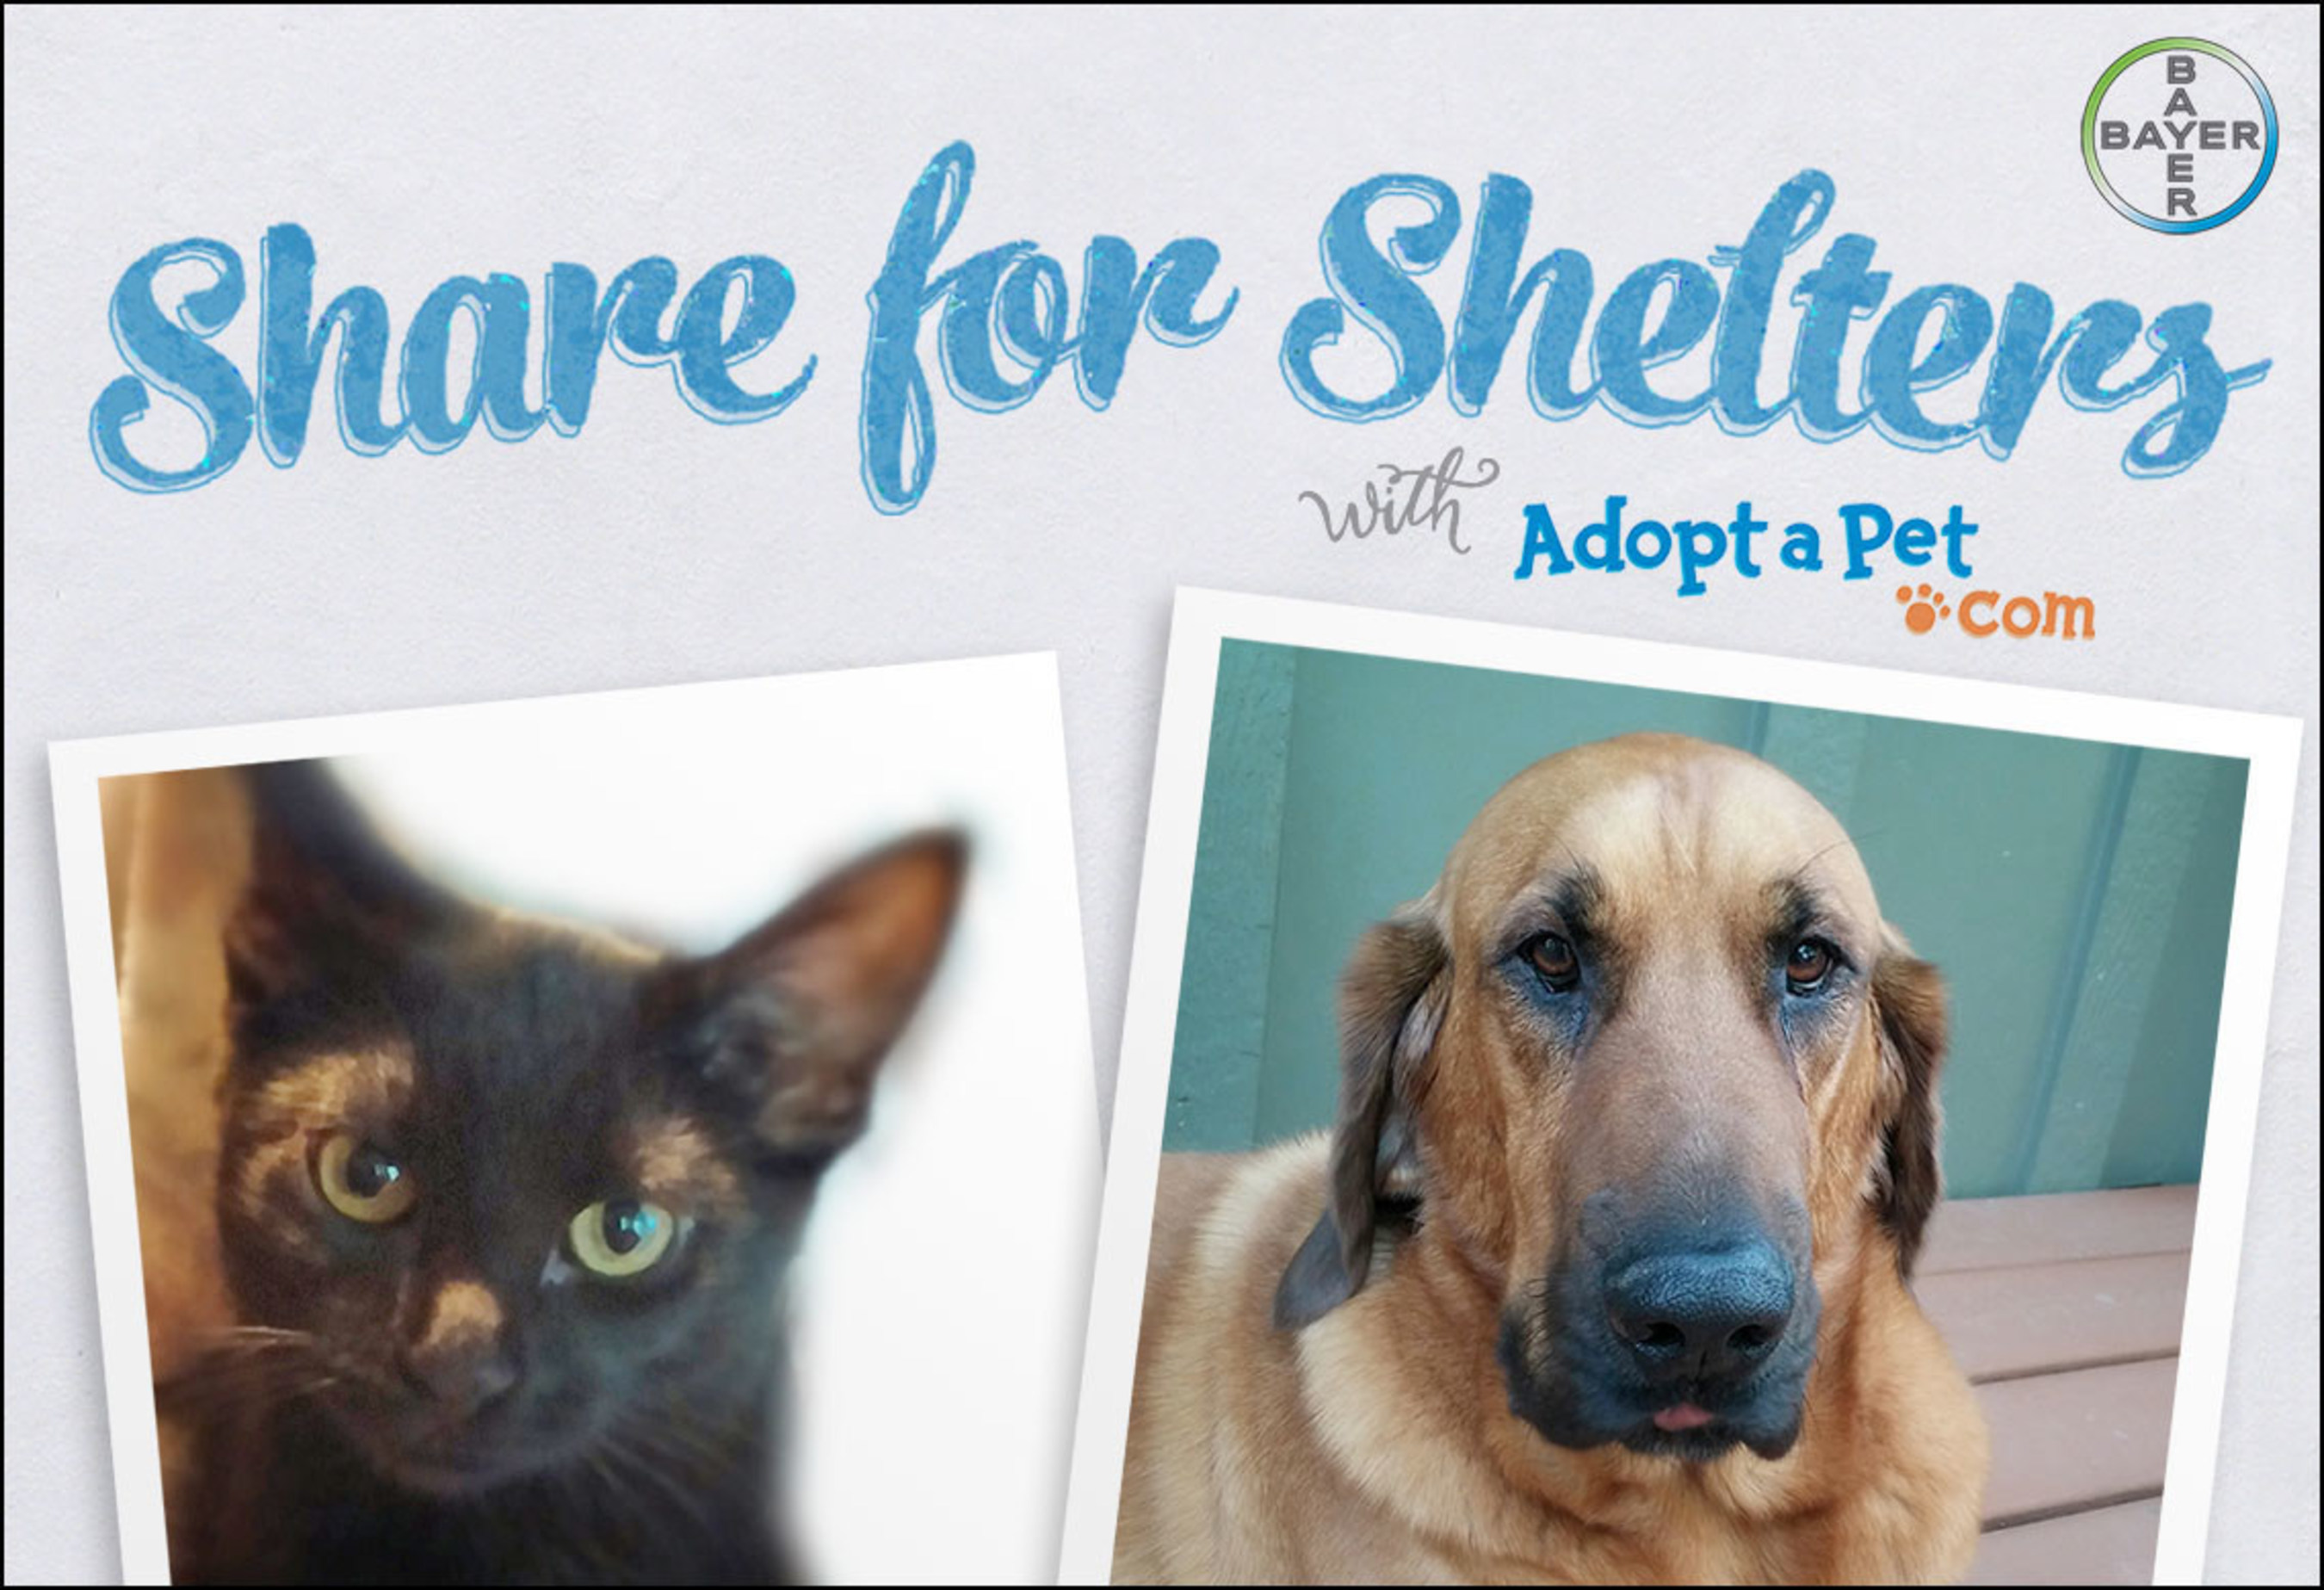 Between now and the end of 2015, for every pet photo uploaded to www.ShareForShelters.com or shared across your social channels using #ShareForShelters, Bayer will provide products valued up to $20,000 to Adopt-a-Pet.com